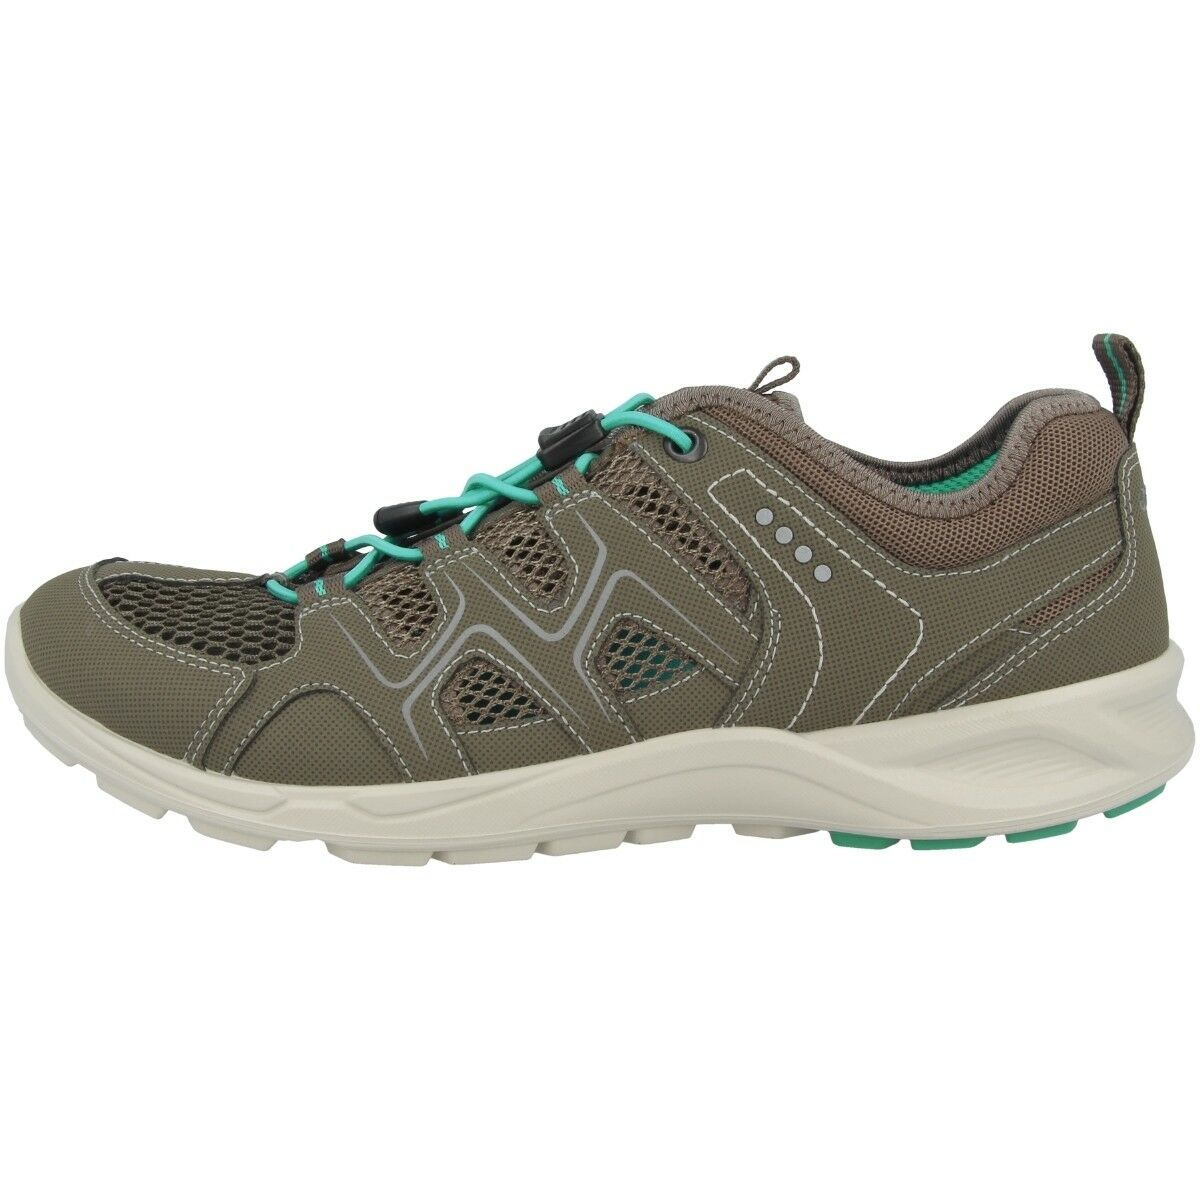 Ecco Terracruise Lite Ladies Trekking Scarpe Outdoor Caldo Grey Clay 84111358440